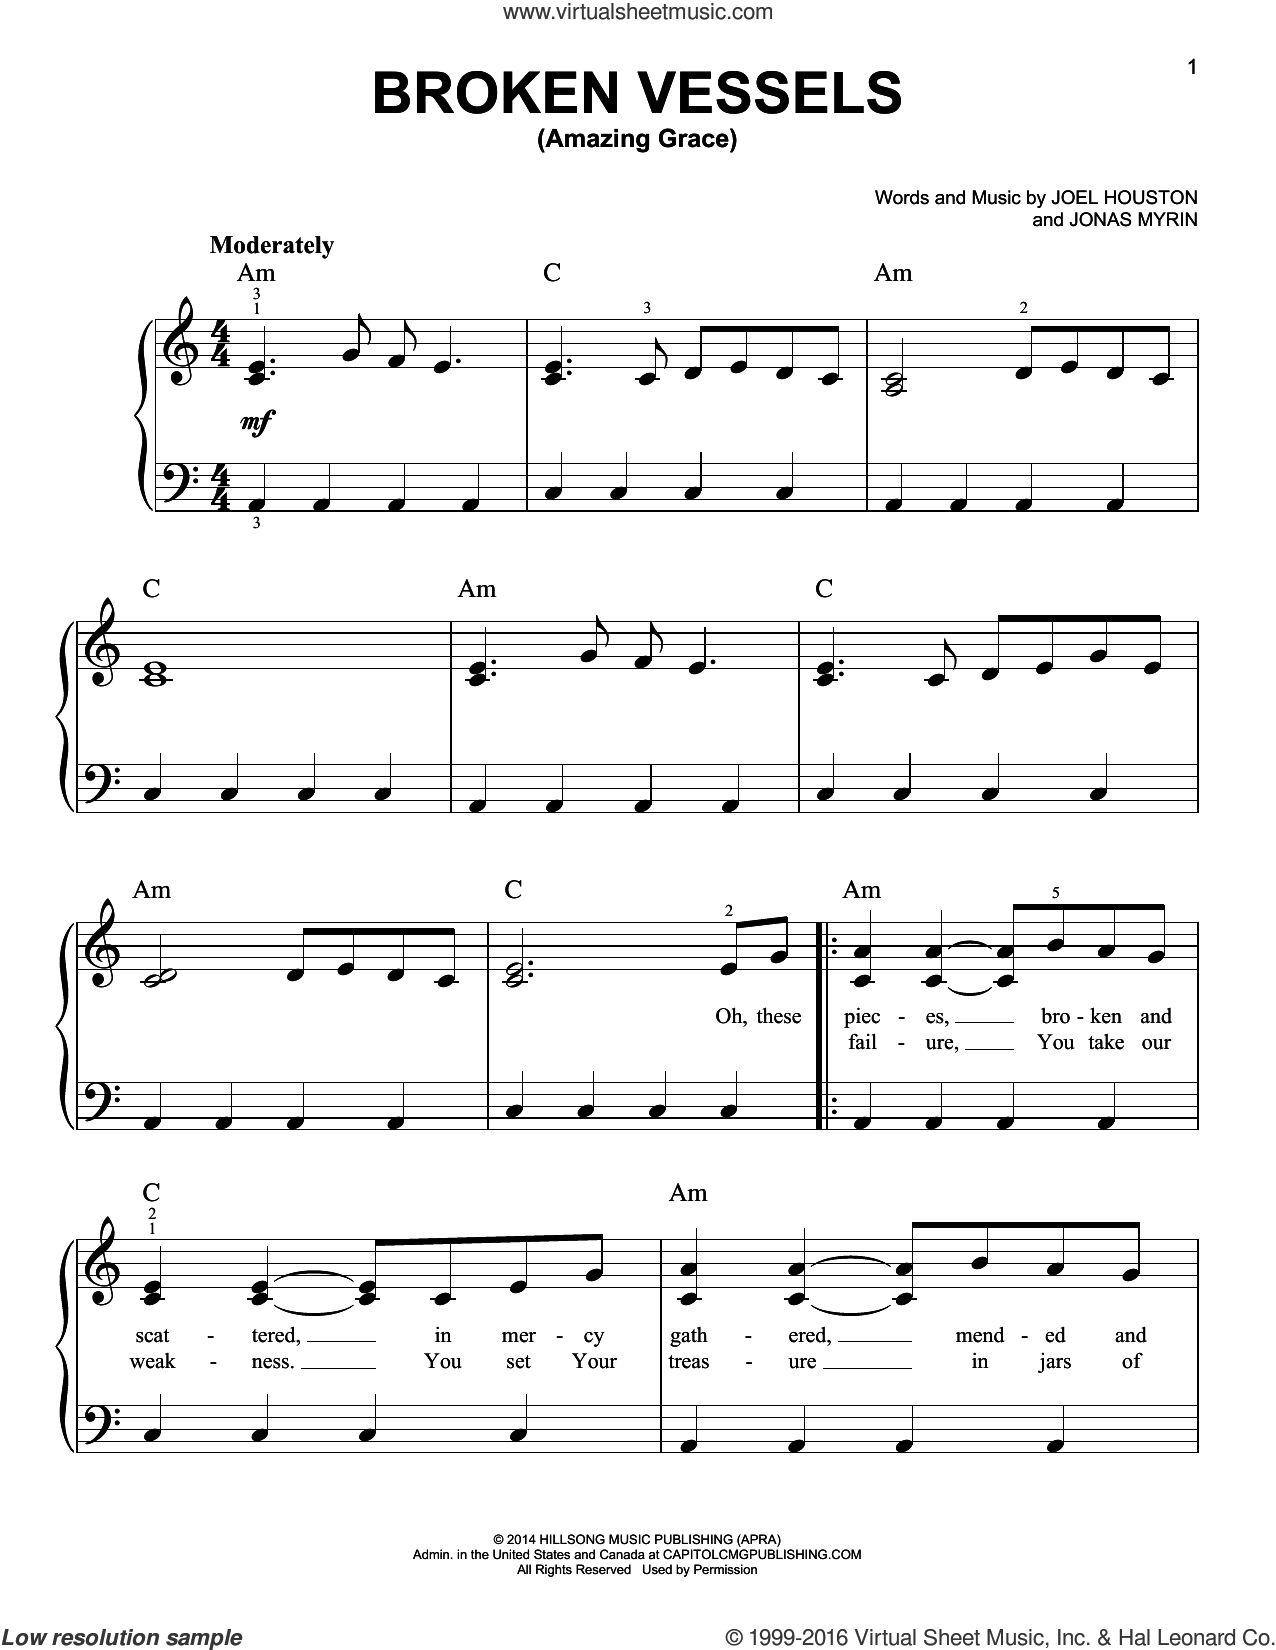 Broken Vessels (Amazing Grace) sheet music for piano solo by Jonas Myrin and Joel Houston. Score Image Preview.